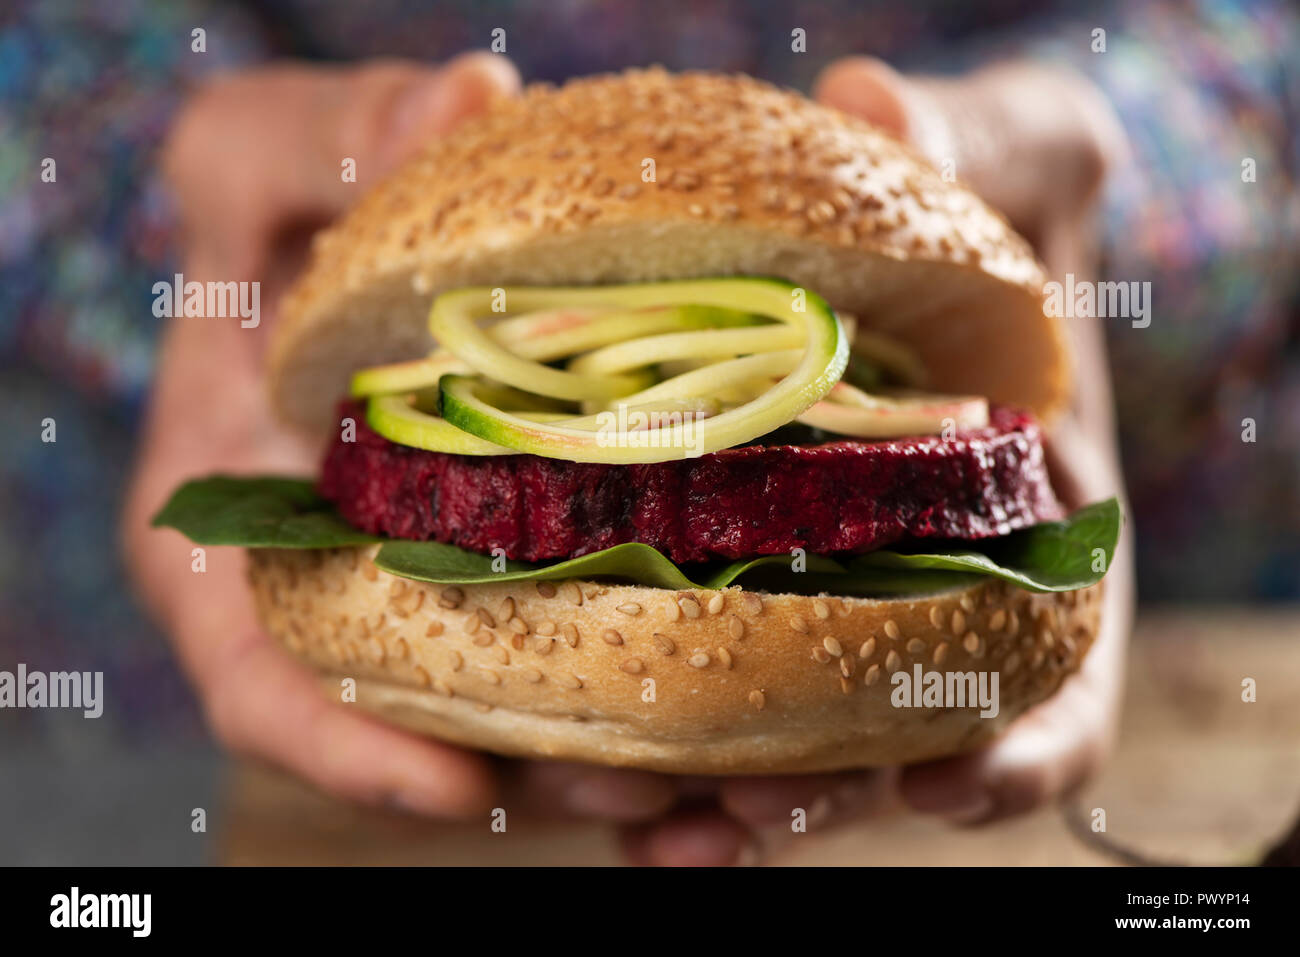 closeup of a young caucasian man with a beet burger sandwich in his hands Stock Photo